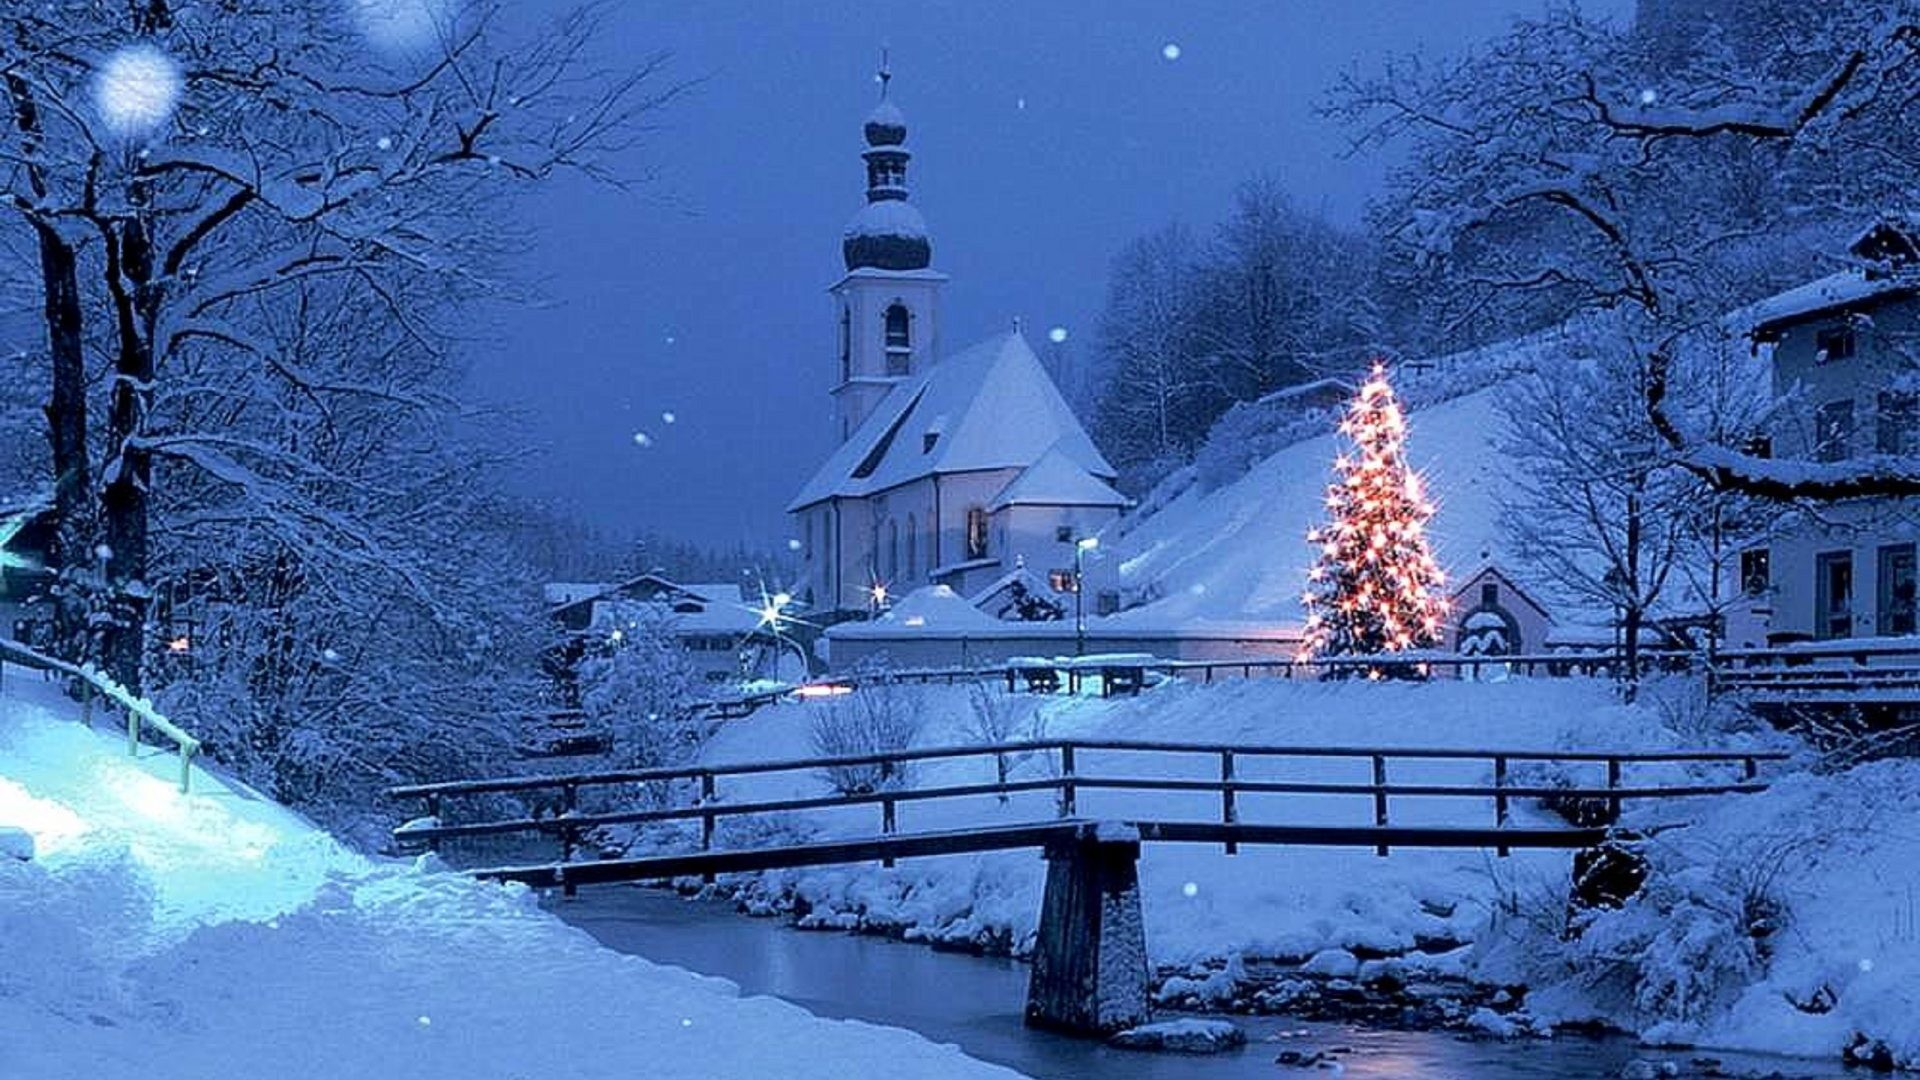 1920x1080 Winter - Lights Snow Winter Christmas Scenery Holidays Xmas Tree Nature  Houses Blue Four Creek Bridge